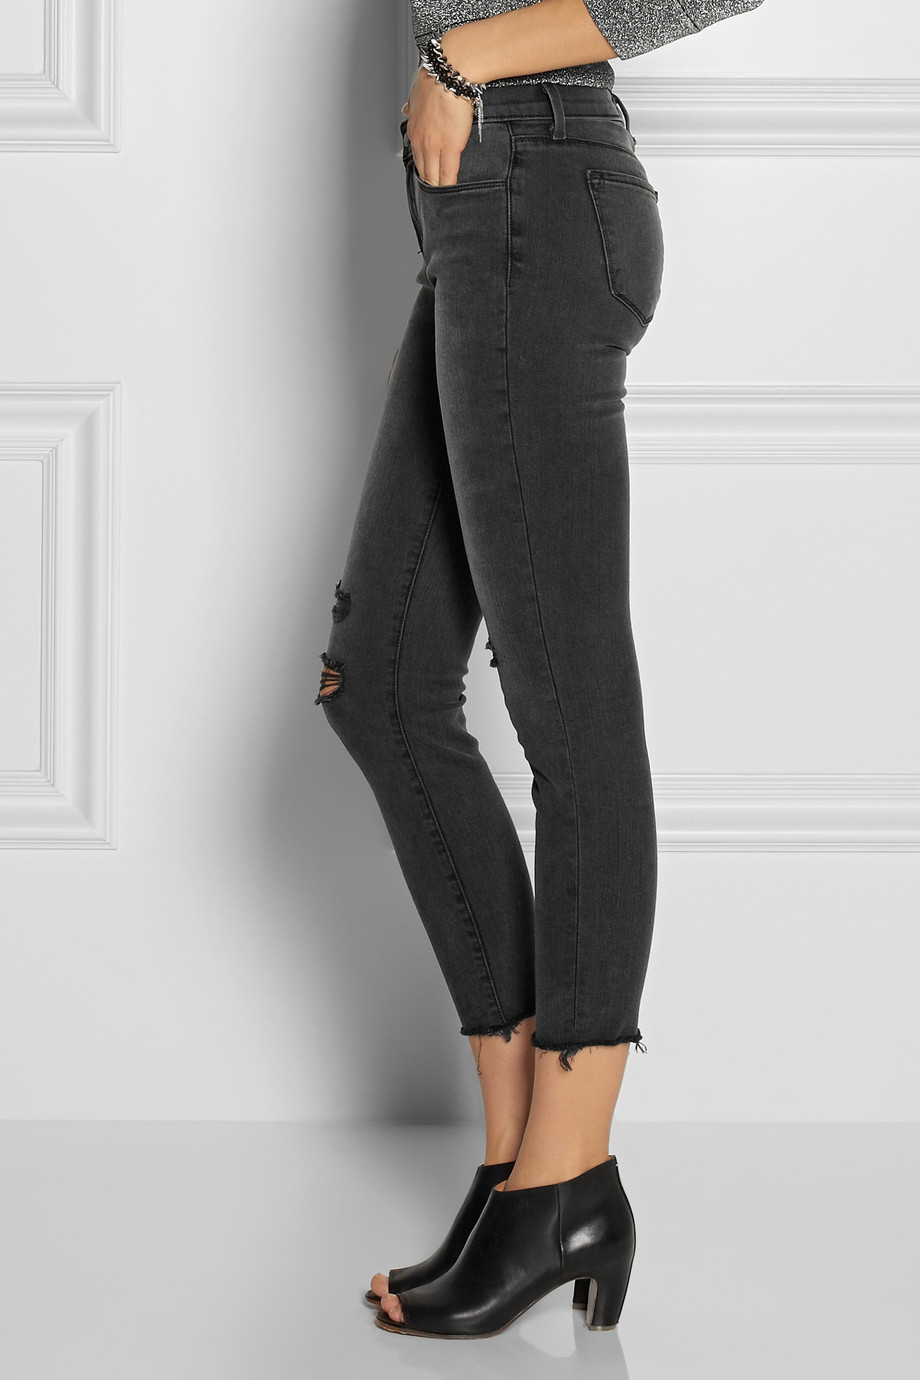 J brand Photo Ready Cropped Skinny Jeans in Black | Lyst - photo #21